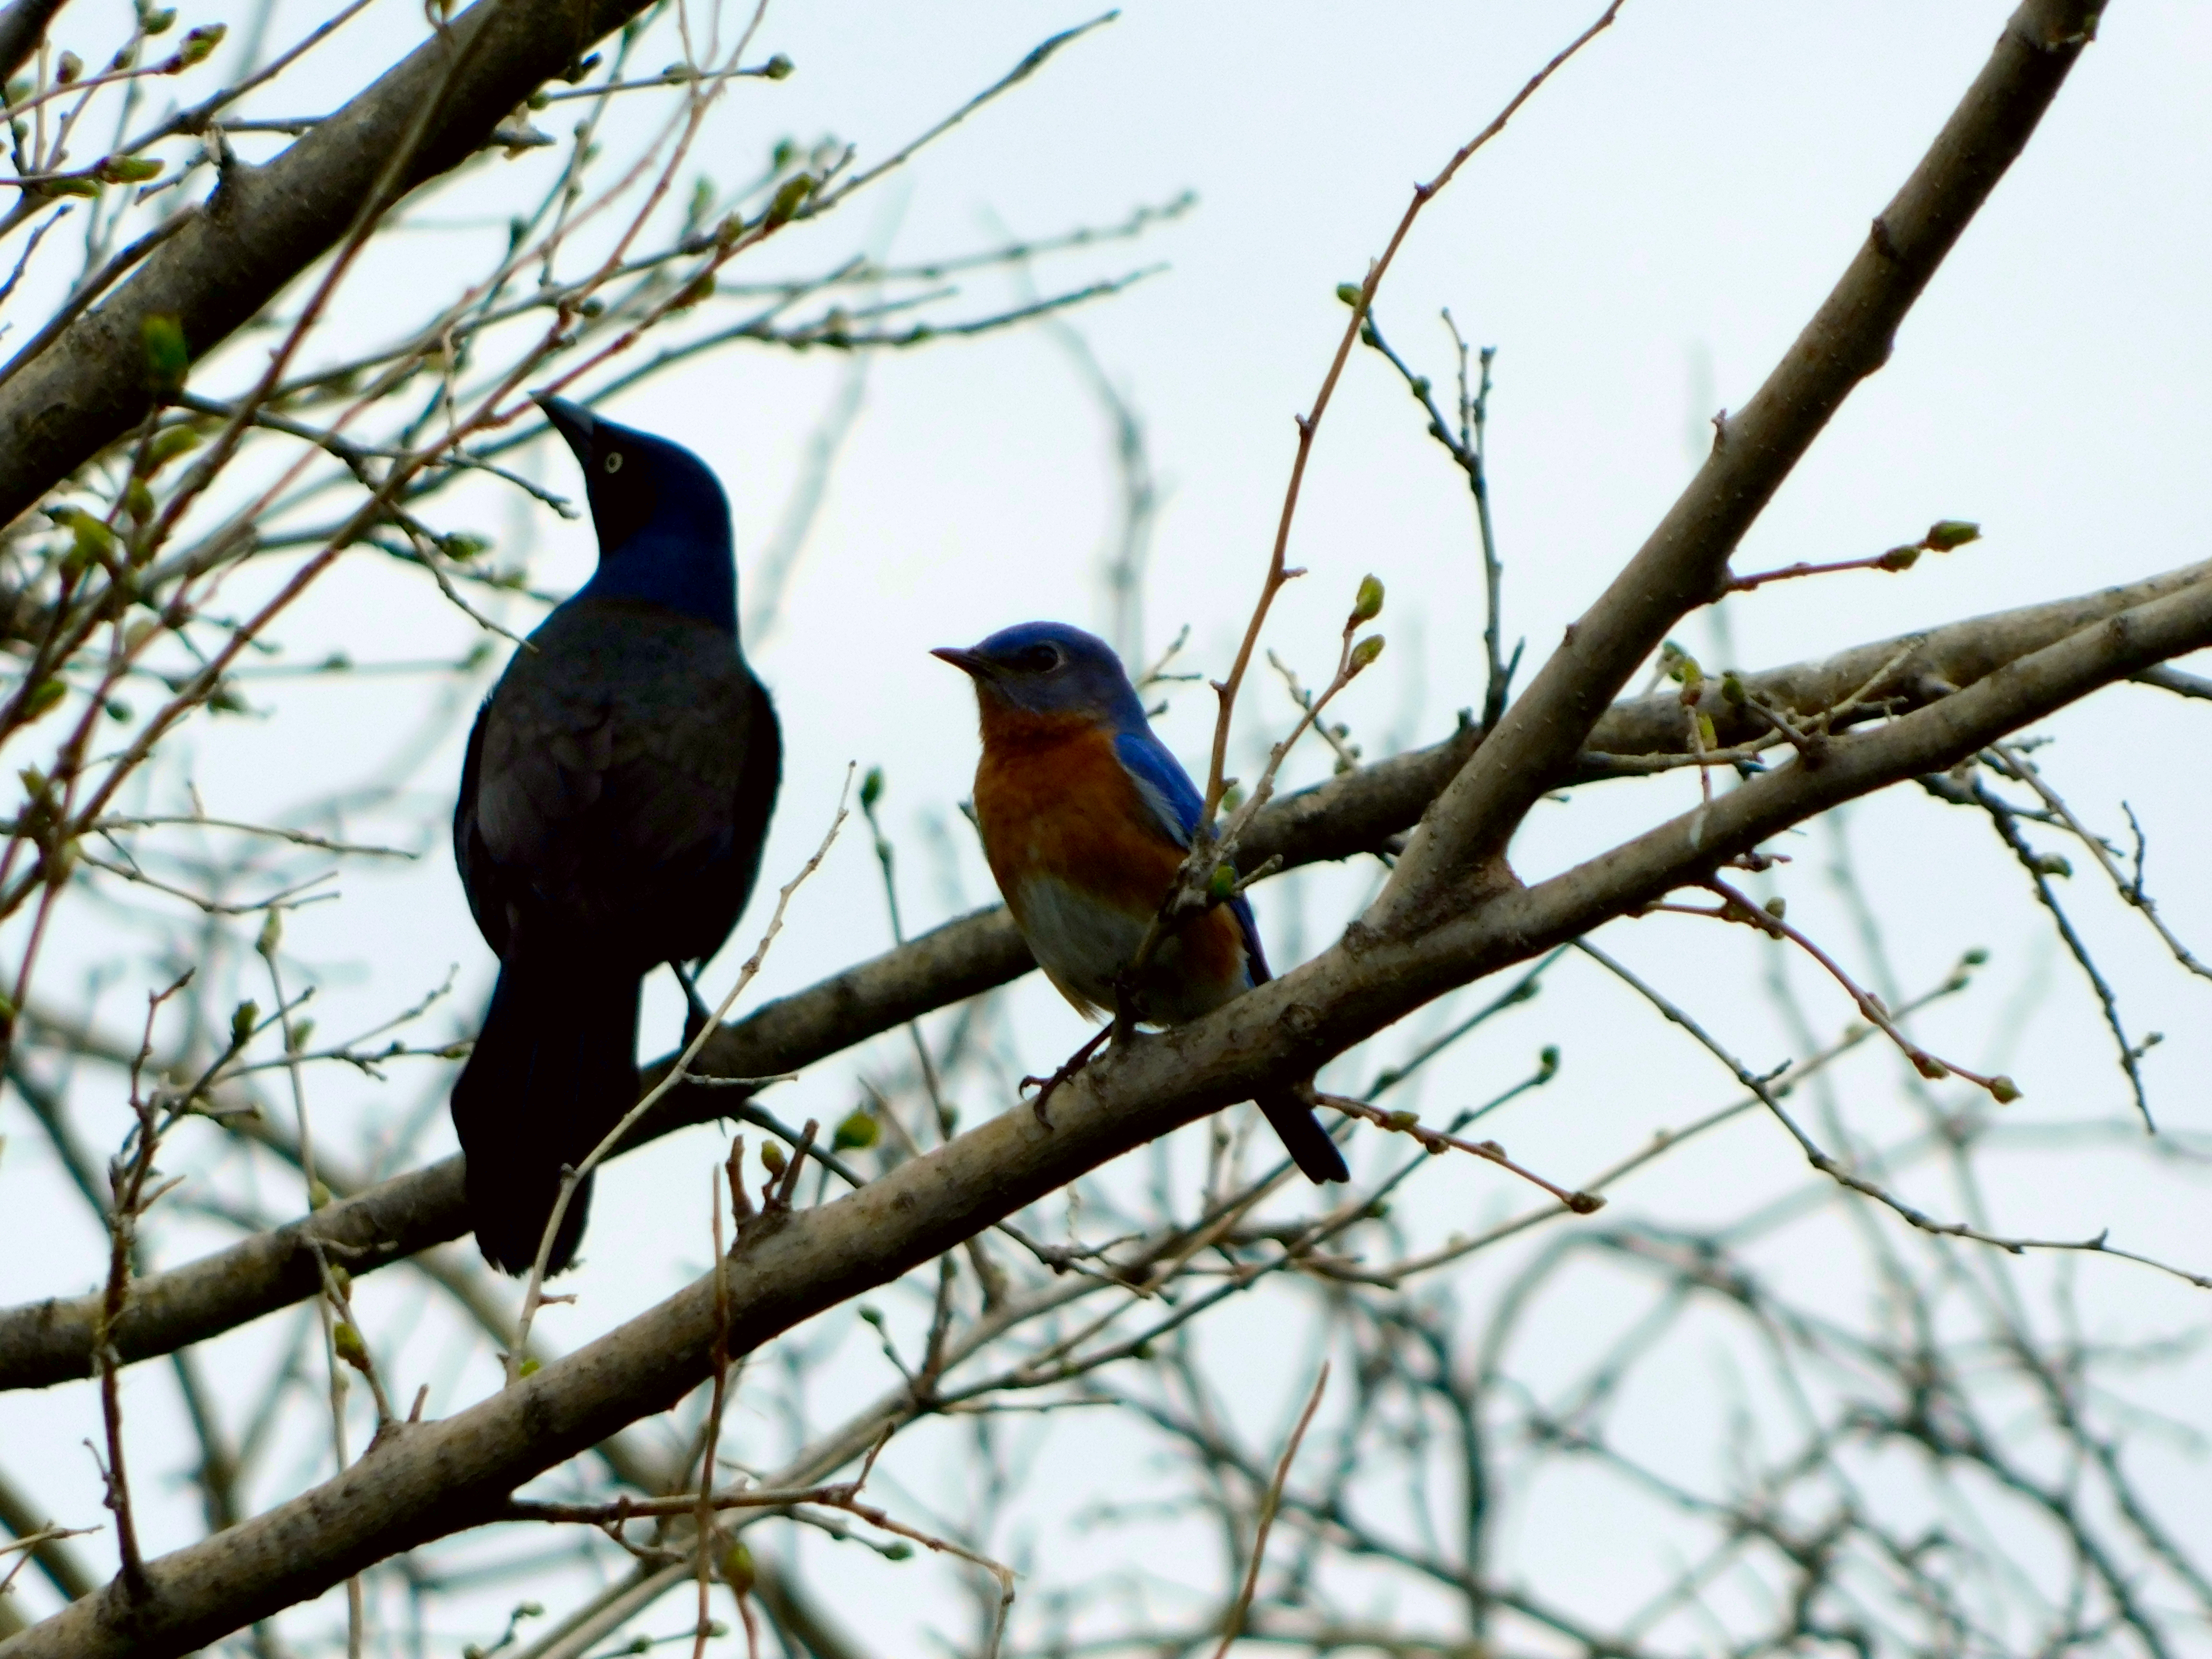 Eastern Bluebird and Common Grackle